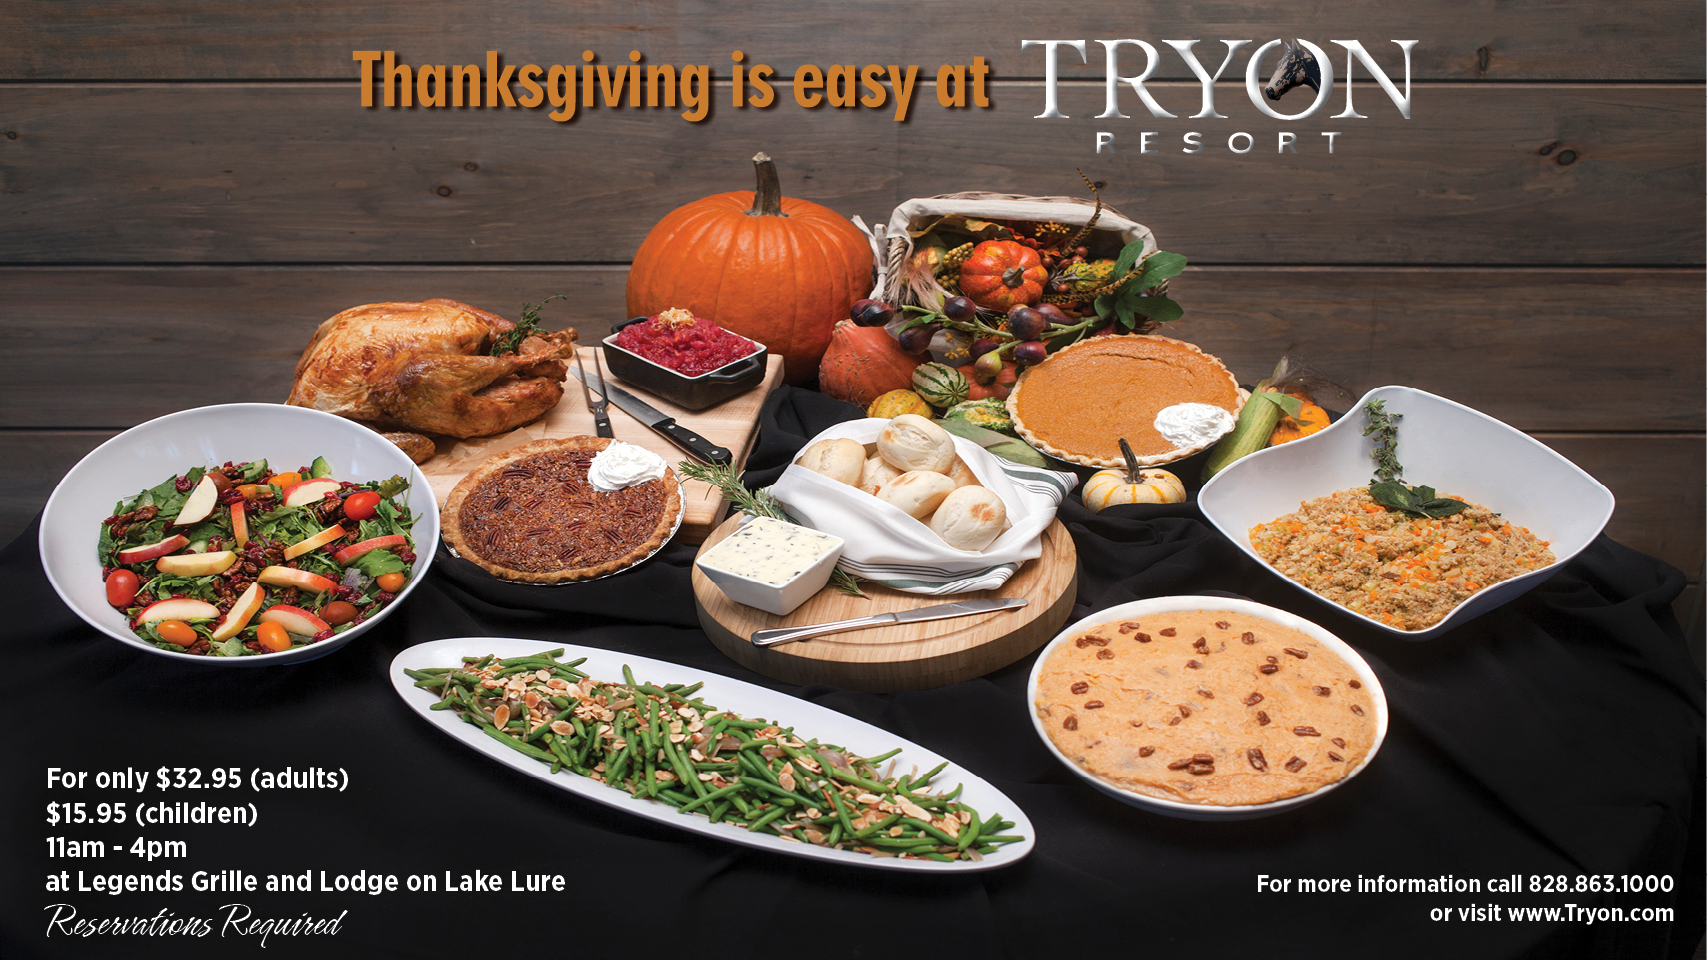 Join us for Thanksgiving at the Lodge!